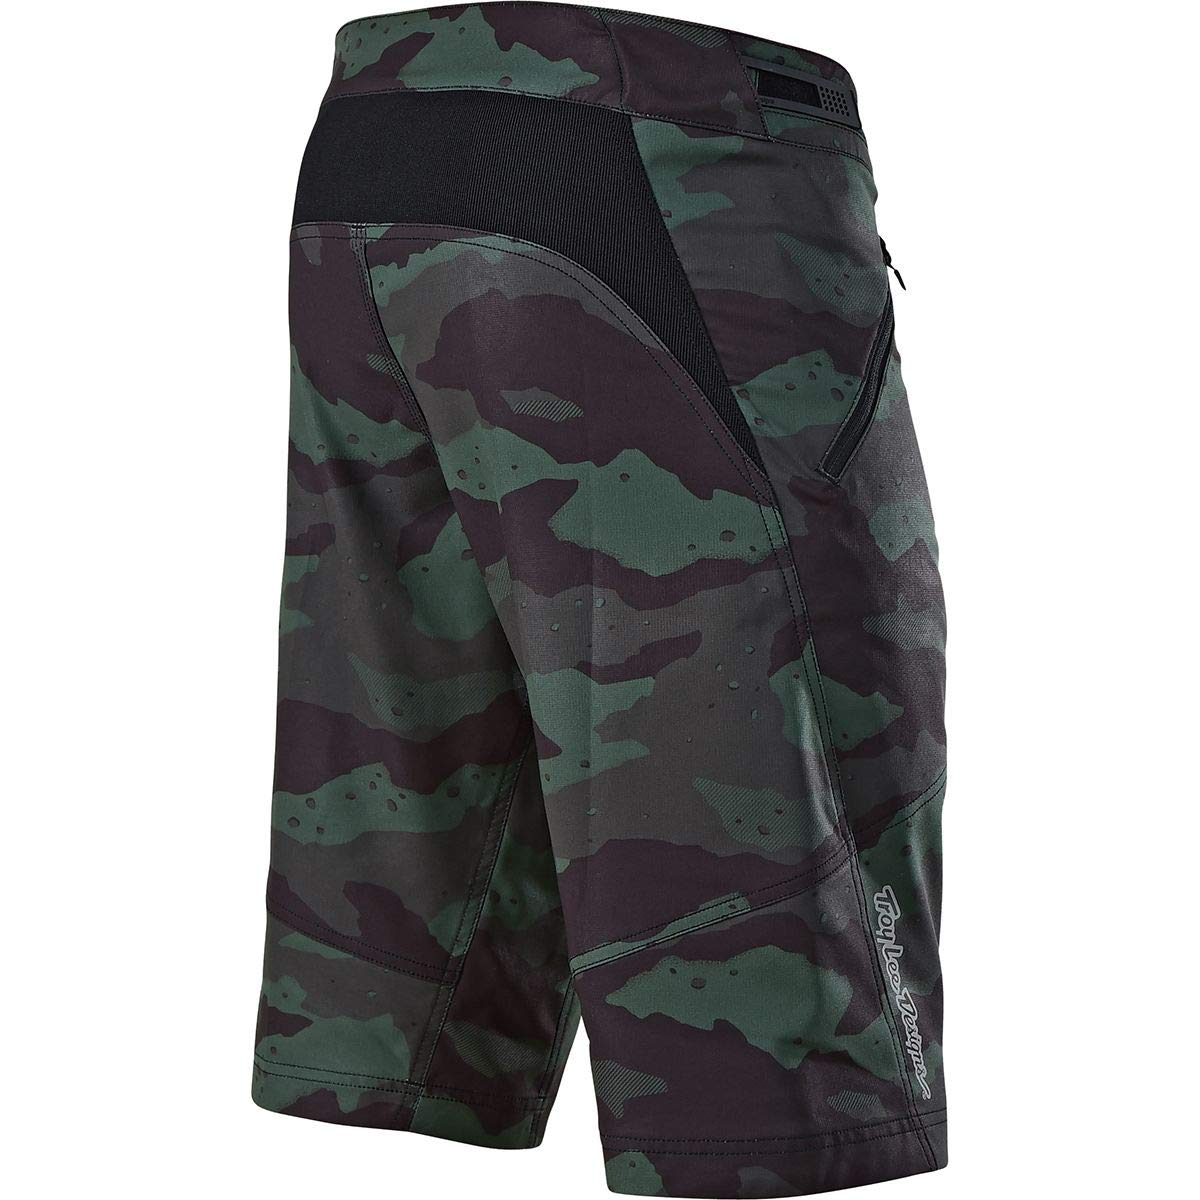 547db73d4 Amazon.com  Troy Lee Designs Skyline Short Shell  Sports   Outdoors